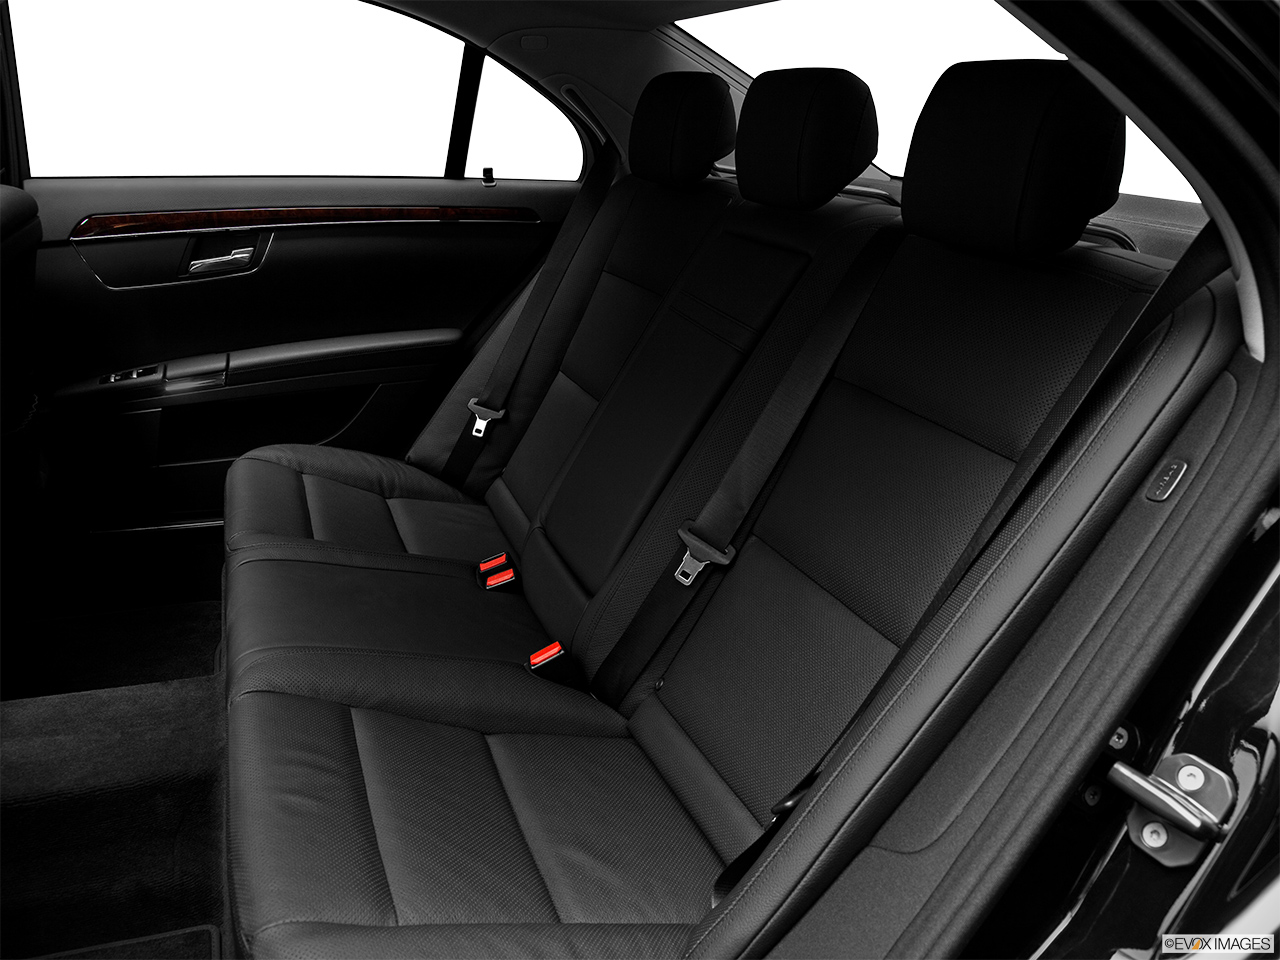 2012 Mercedes-Benz S-Class Hybrid S400 Rear seats from Drivers Side.